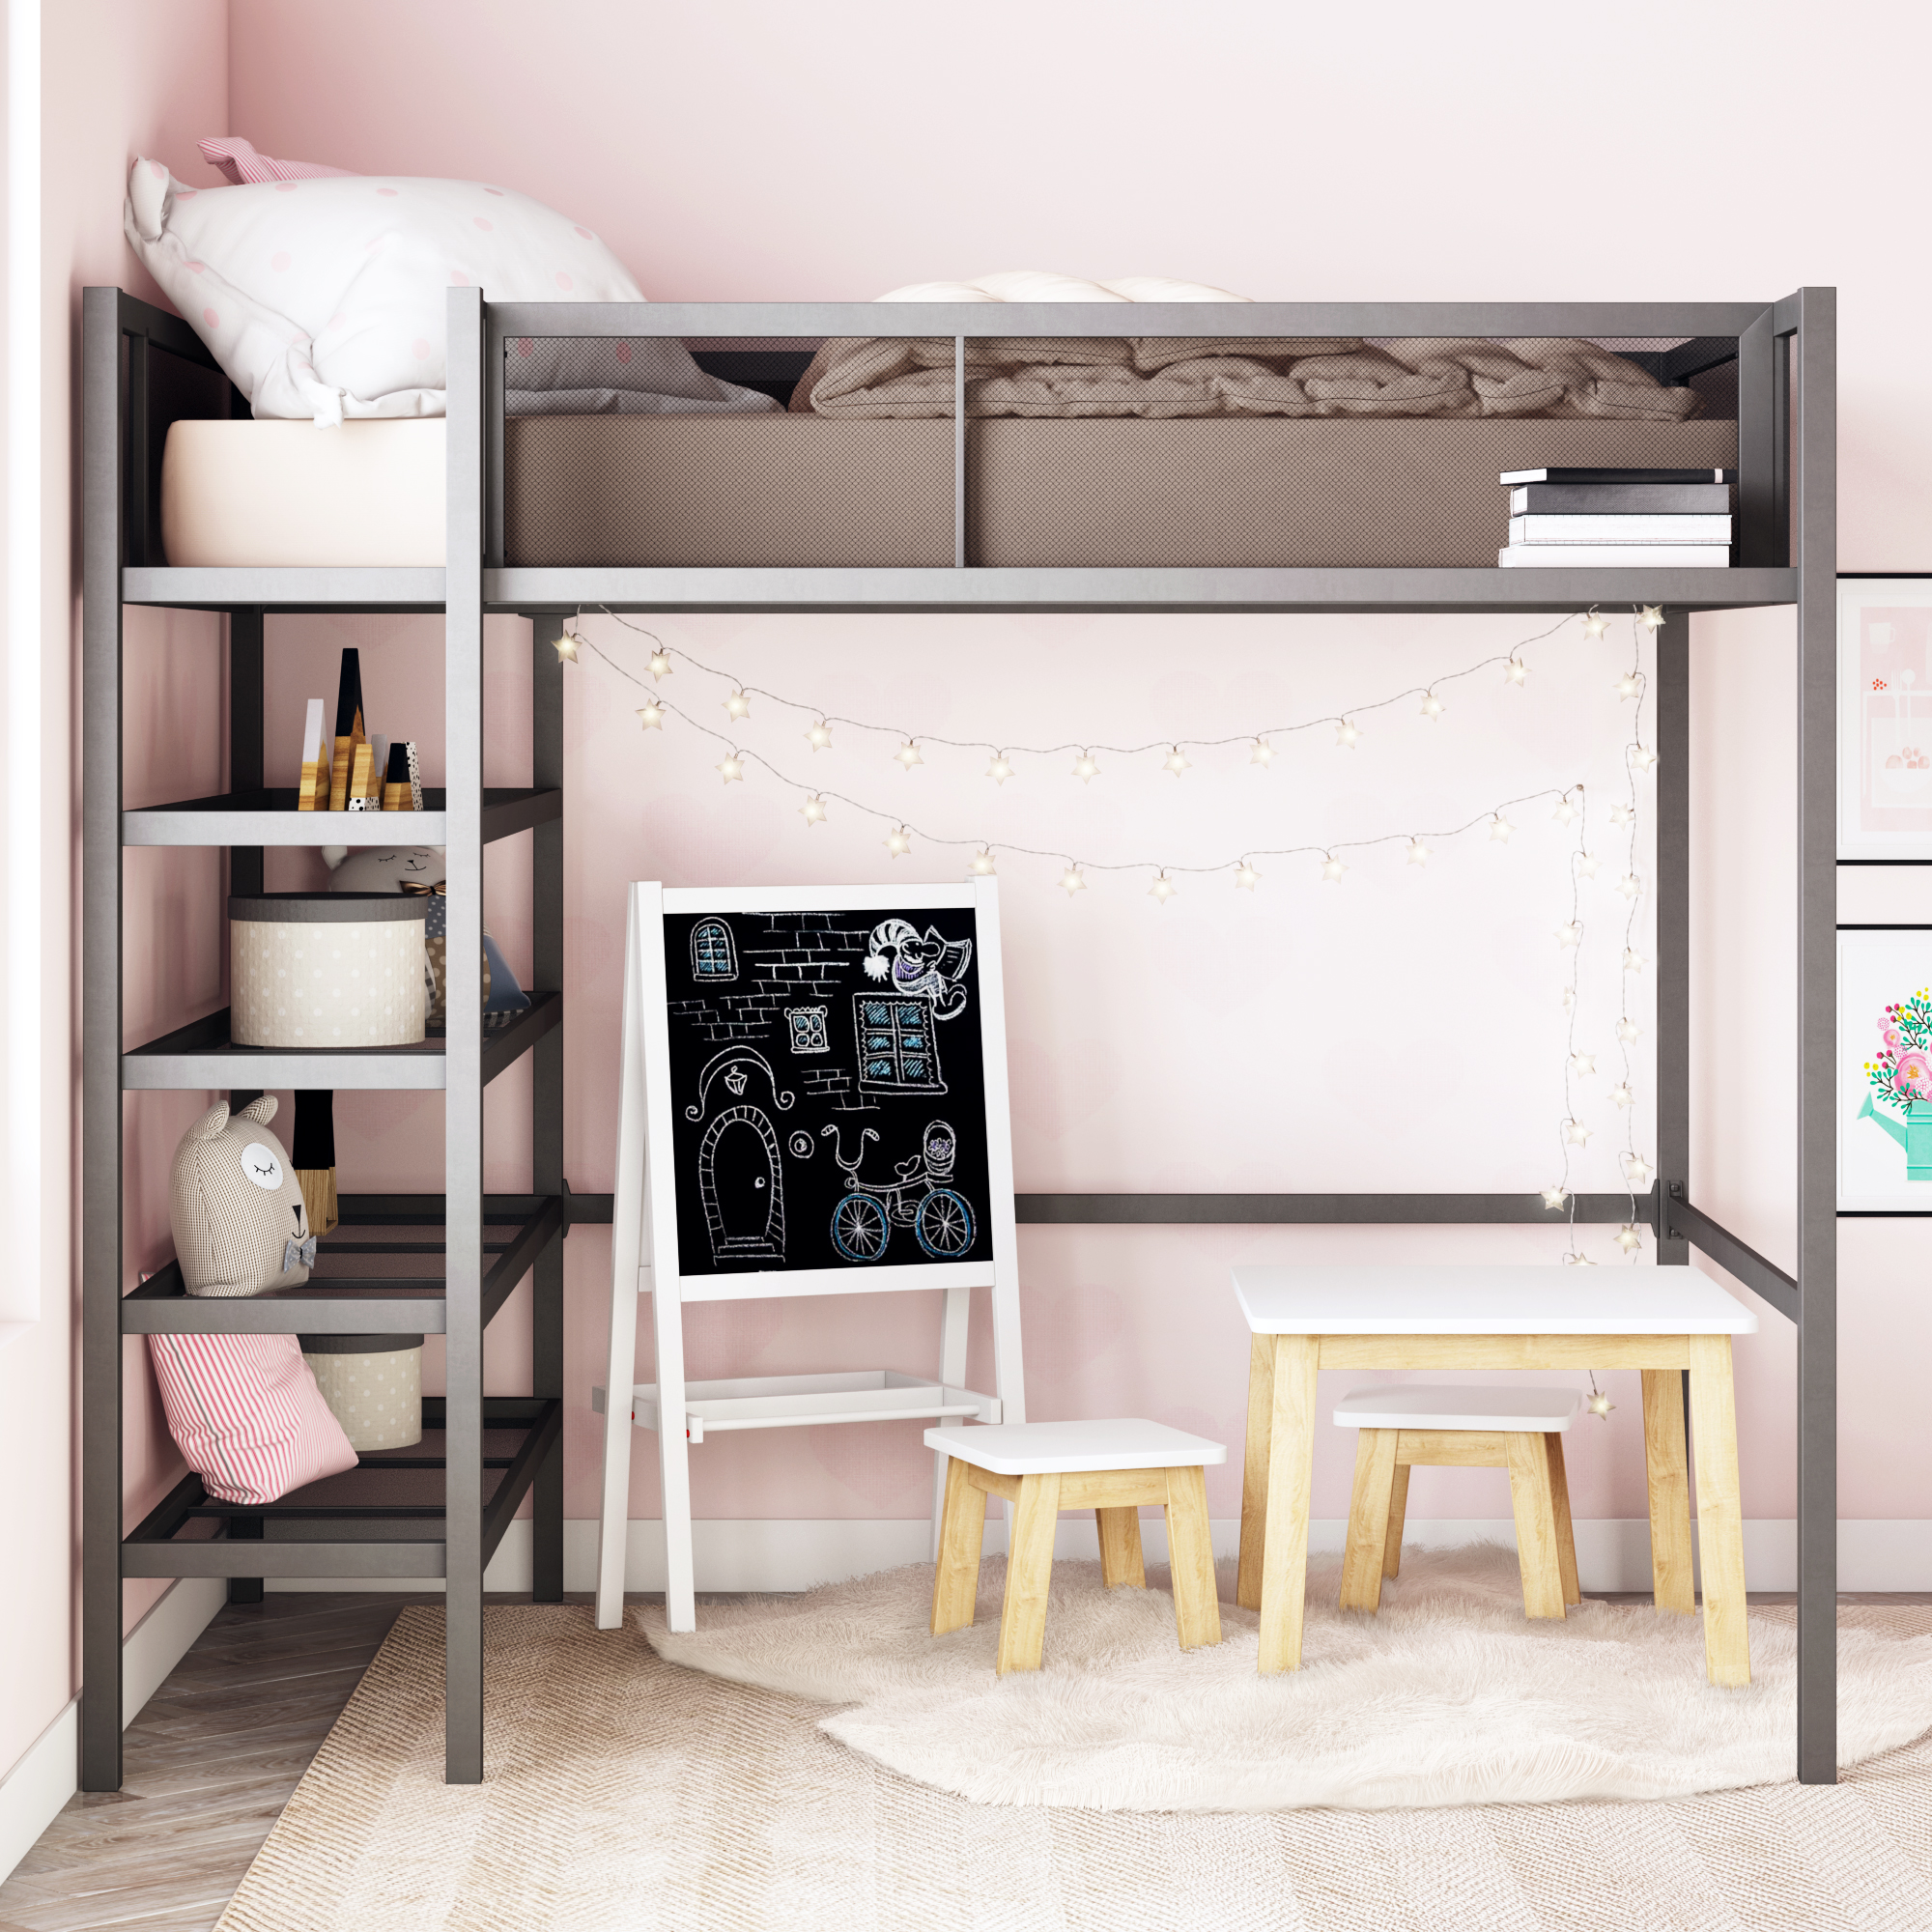 Mainstays Metal Storage Loft Bed With Book Case, Black, Twin